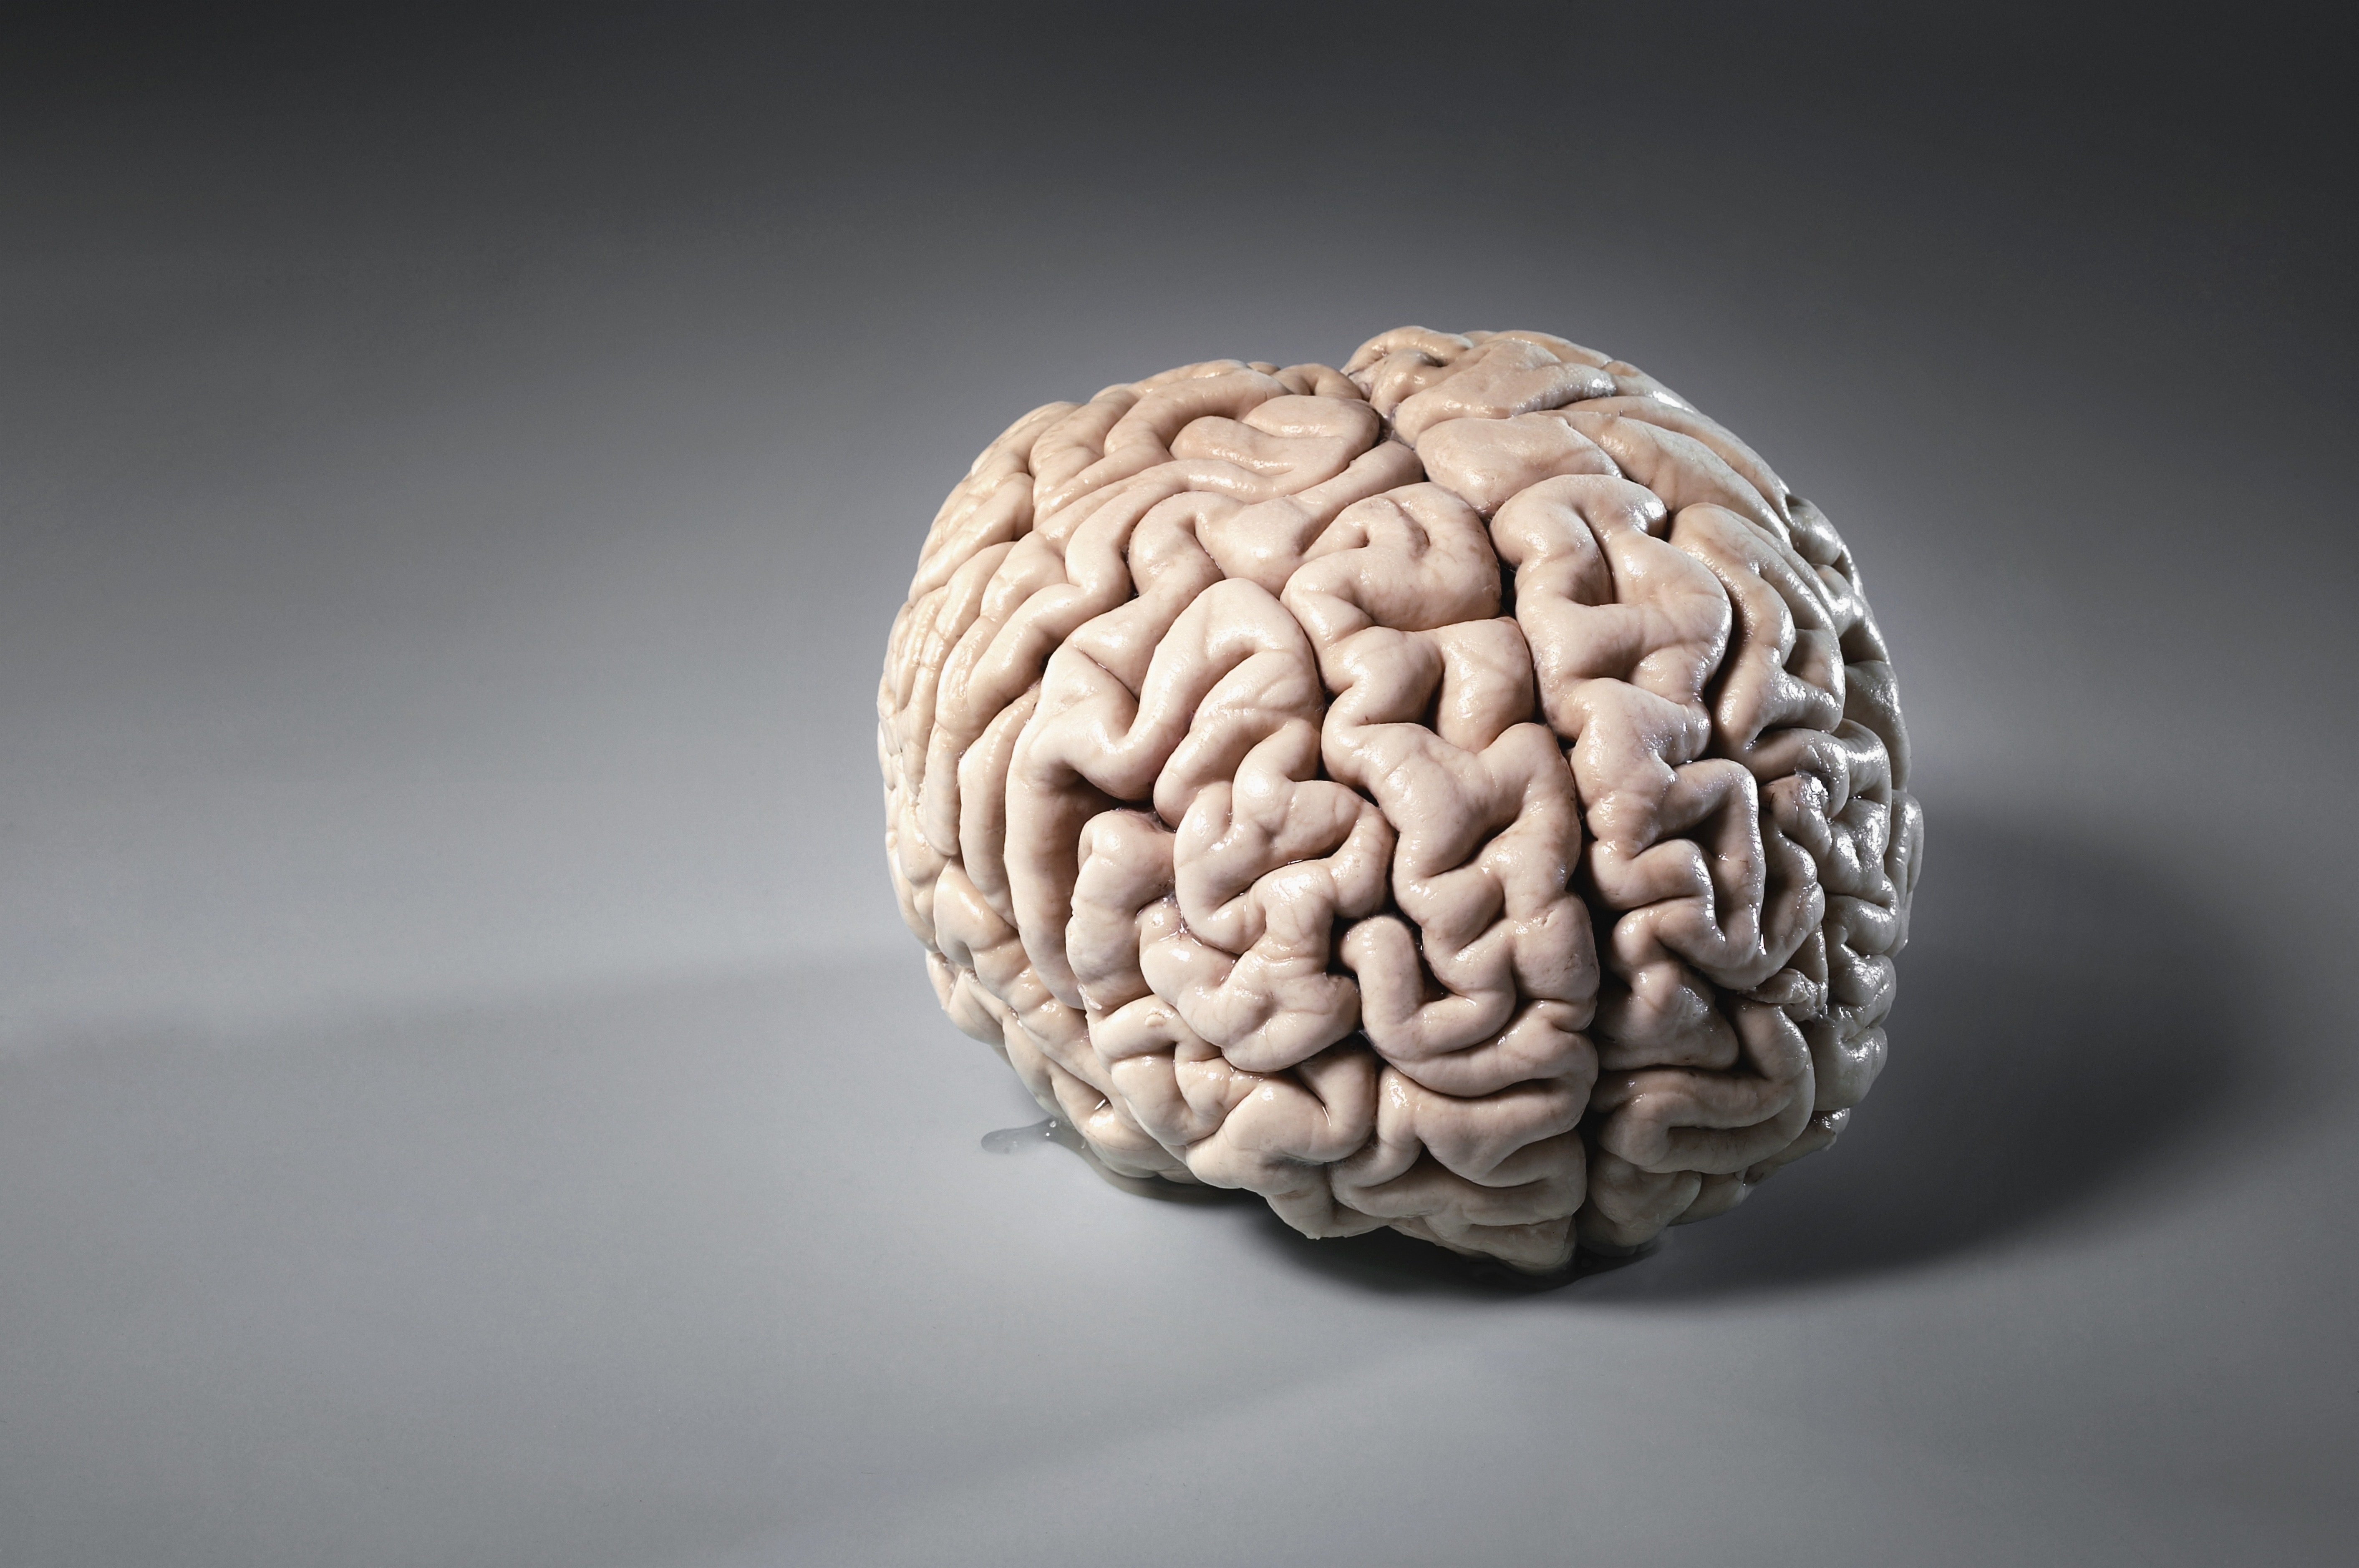 You don't have a male or female brain – the more brains scientists study, the weaker the evidence for sex differences